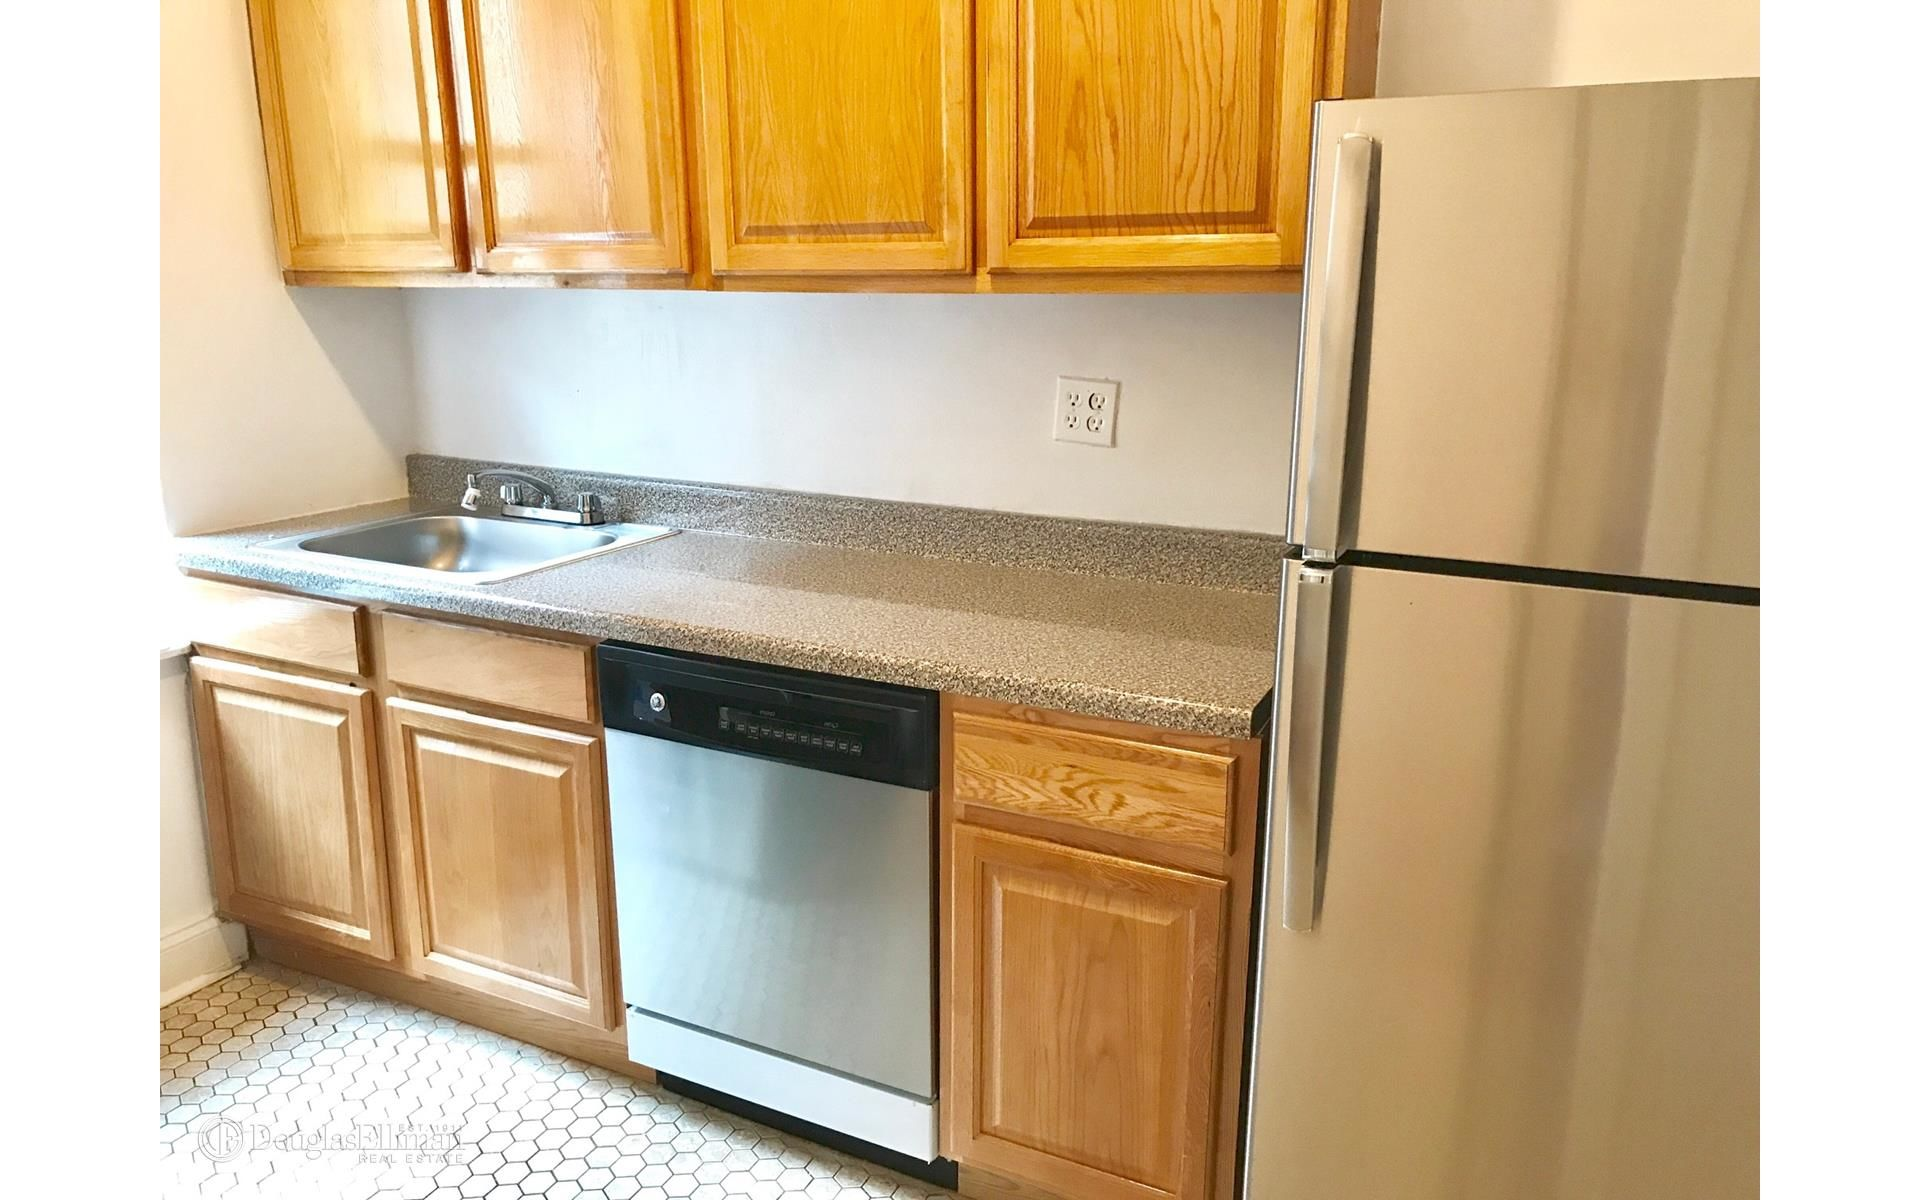 Kitchen cabinets 65th street brooklyn -  3706 65th St Apt 4g Photo 3 Elliman 2849339